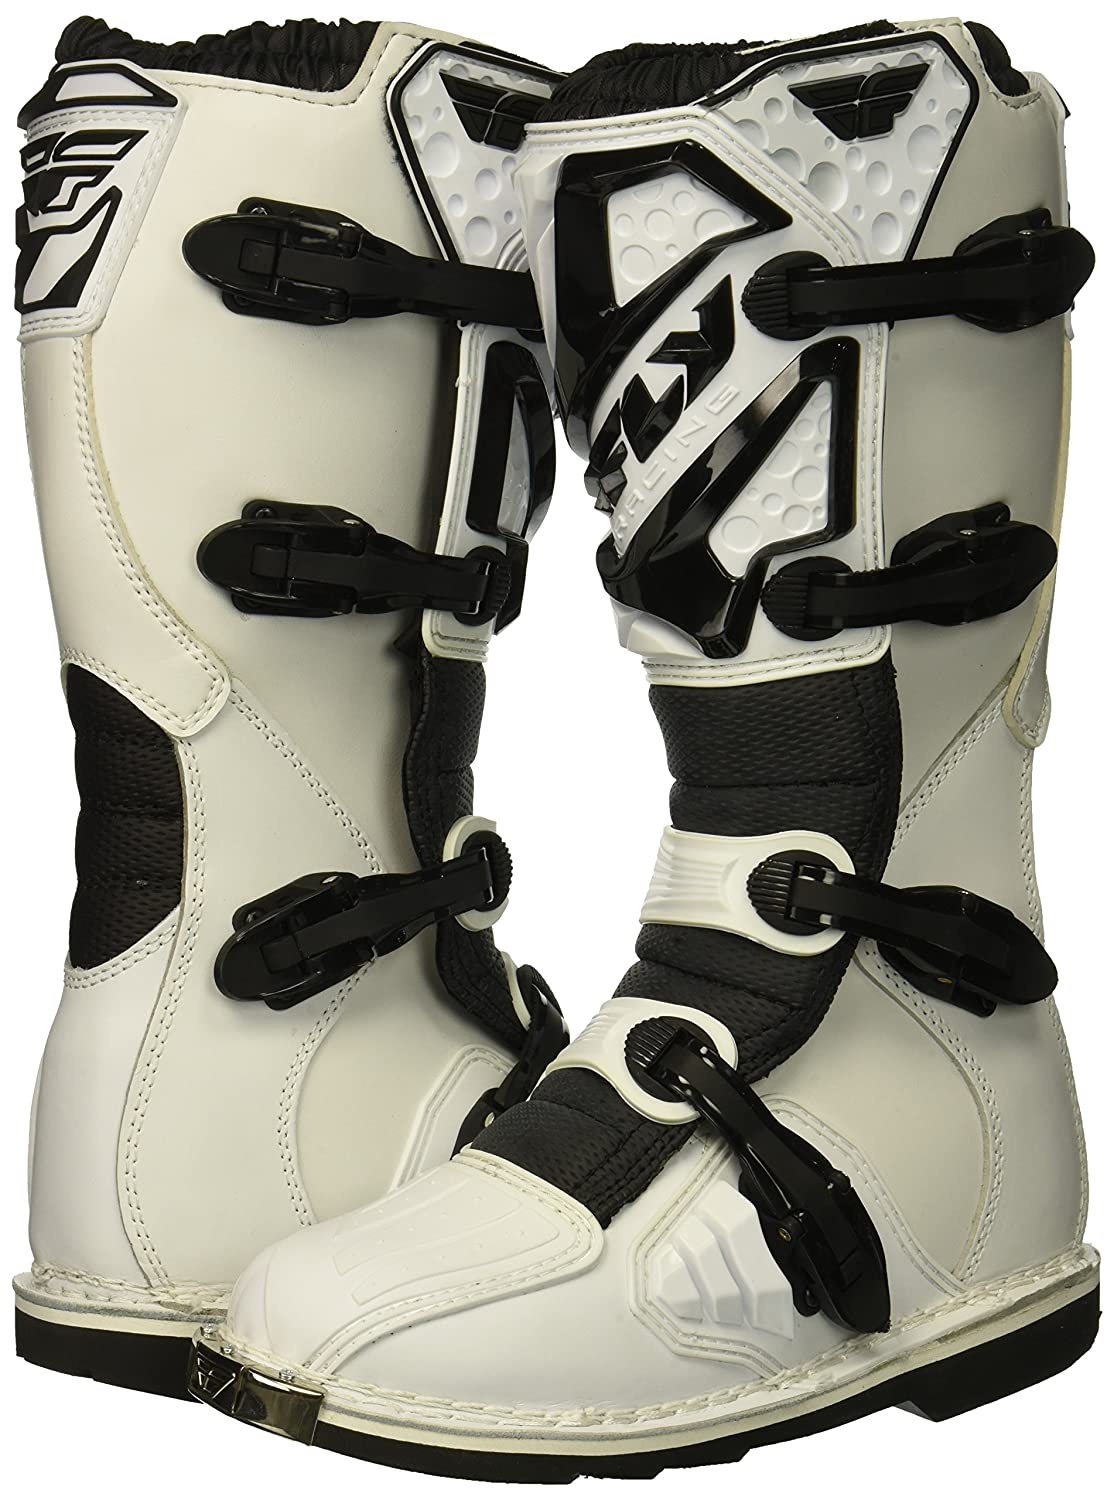 Fly Racing Unisex-Adult Fly Maverick Boots Black Size 6